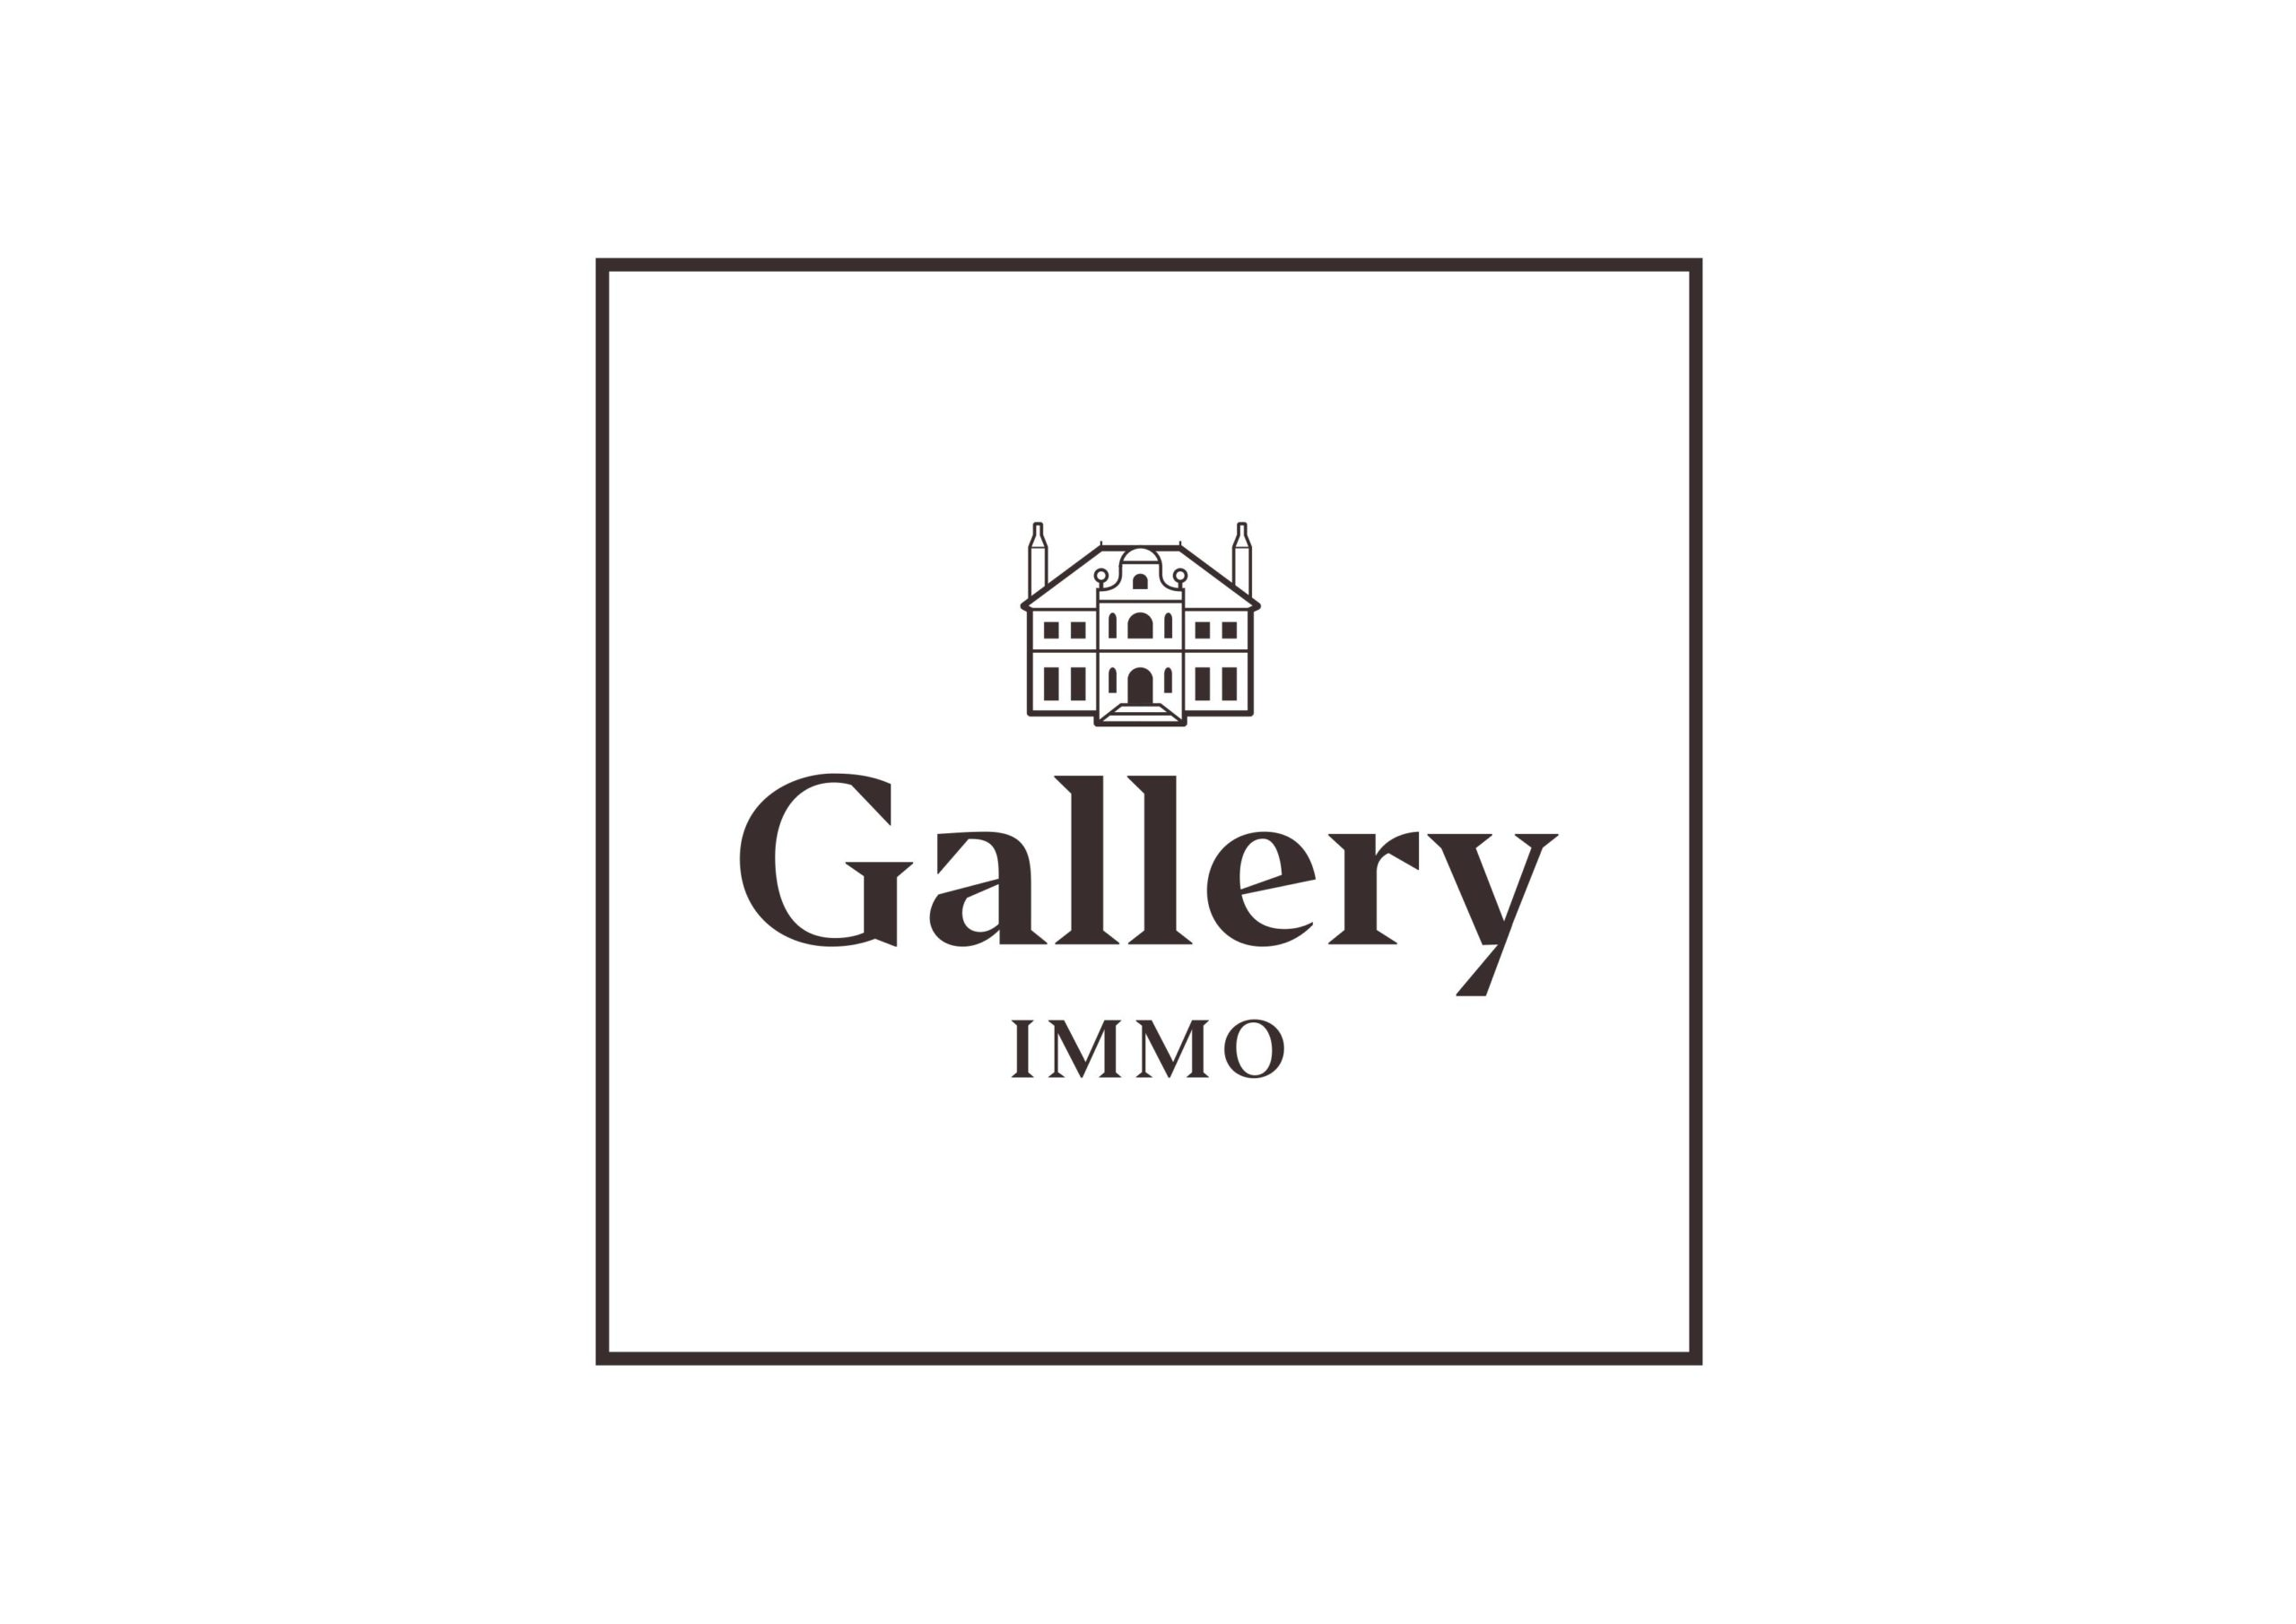 Gallery Immo